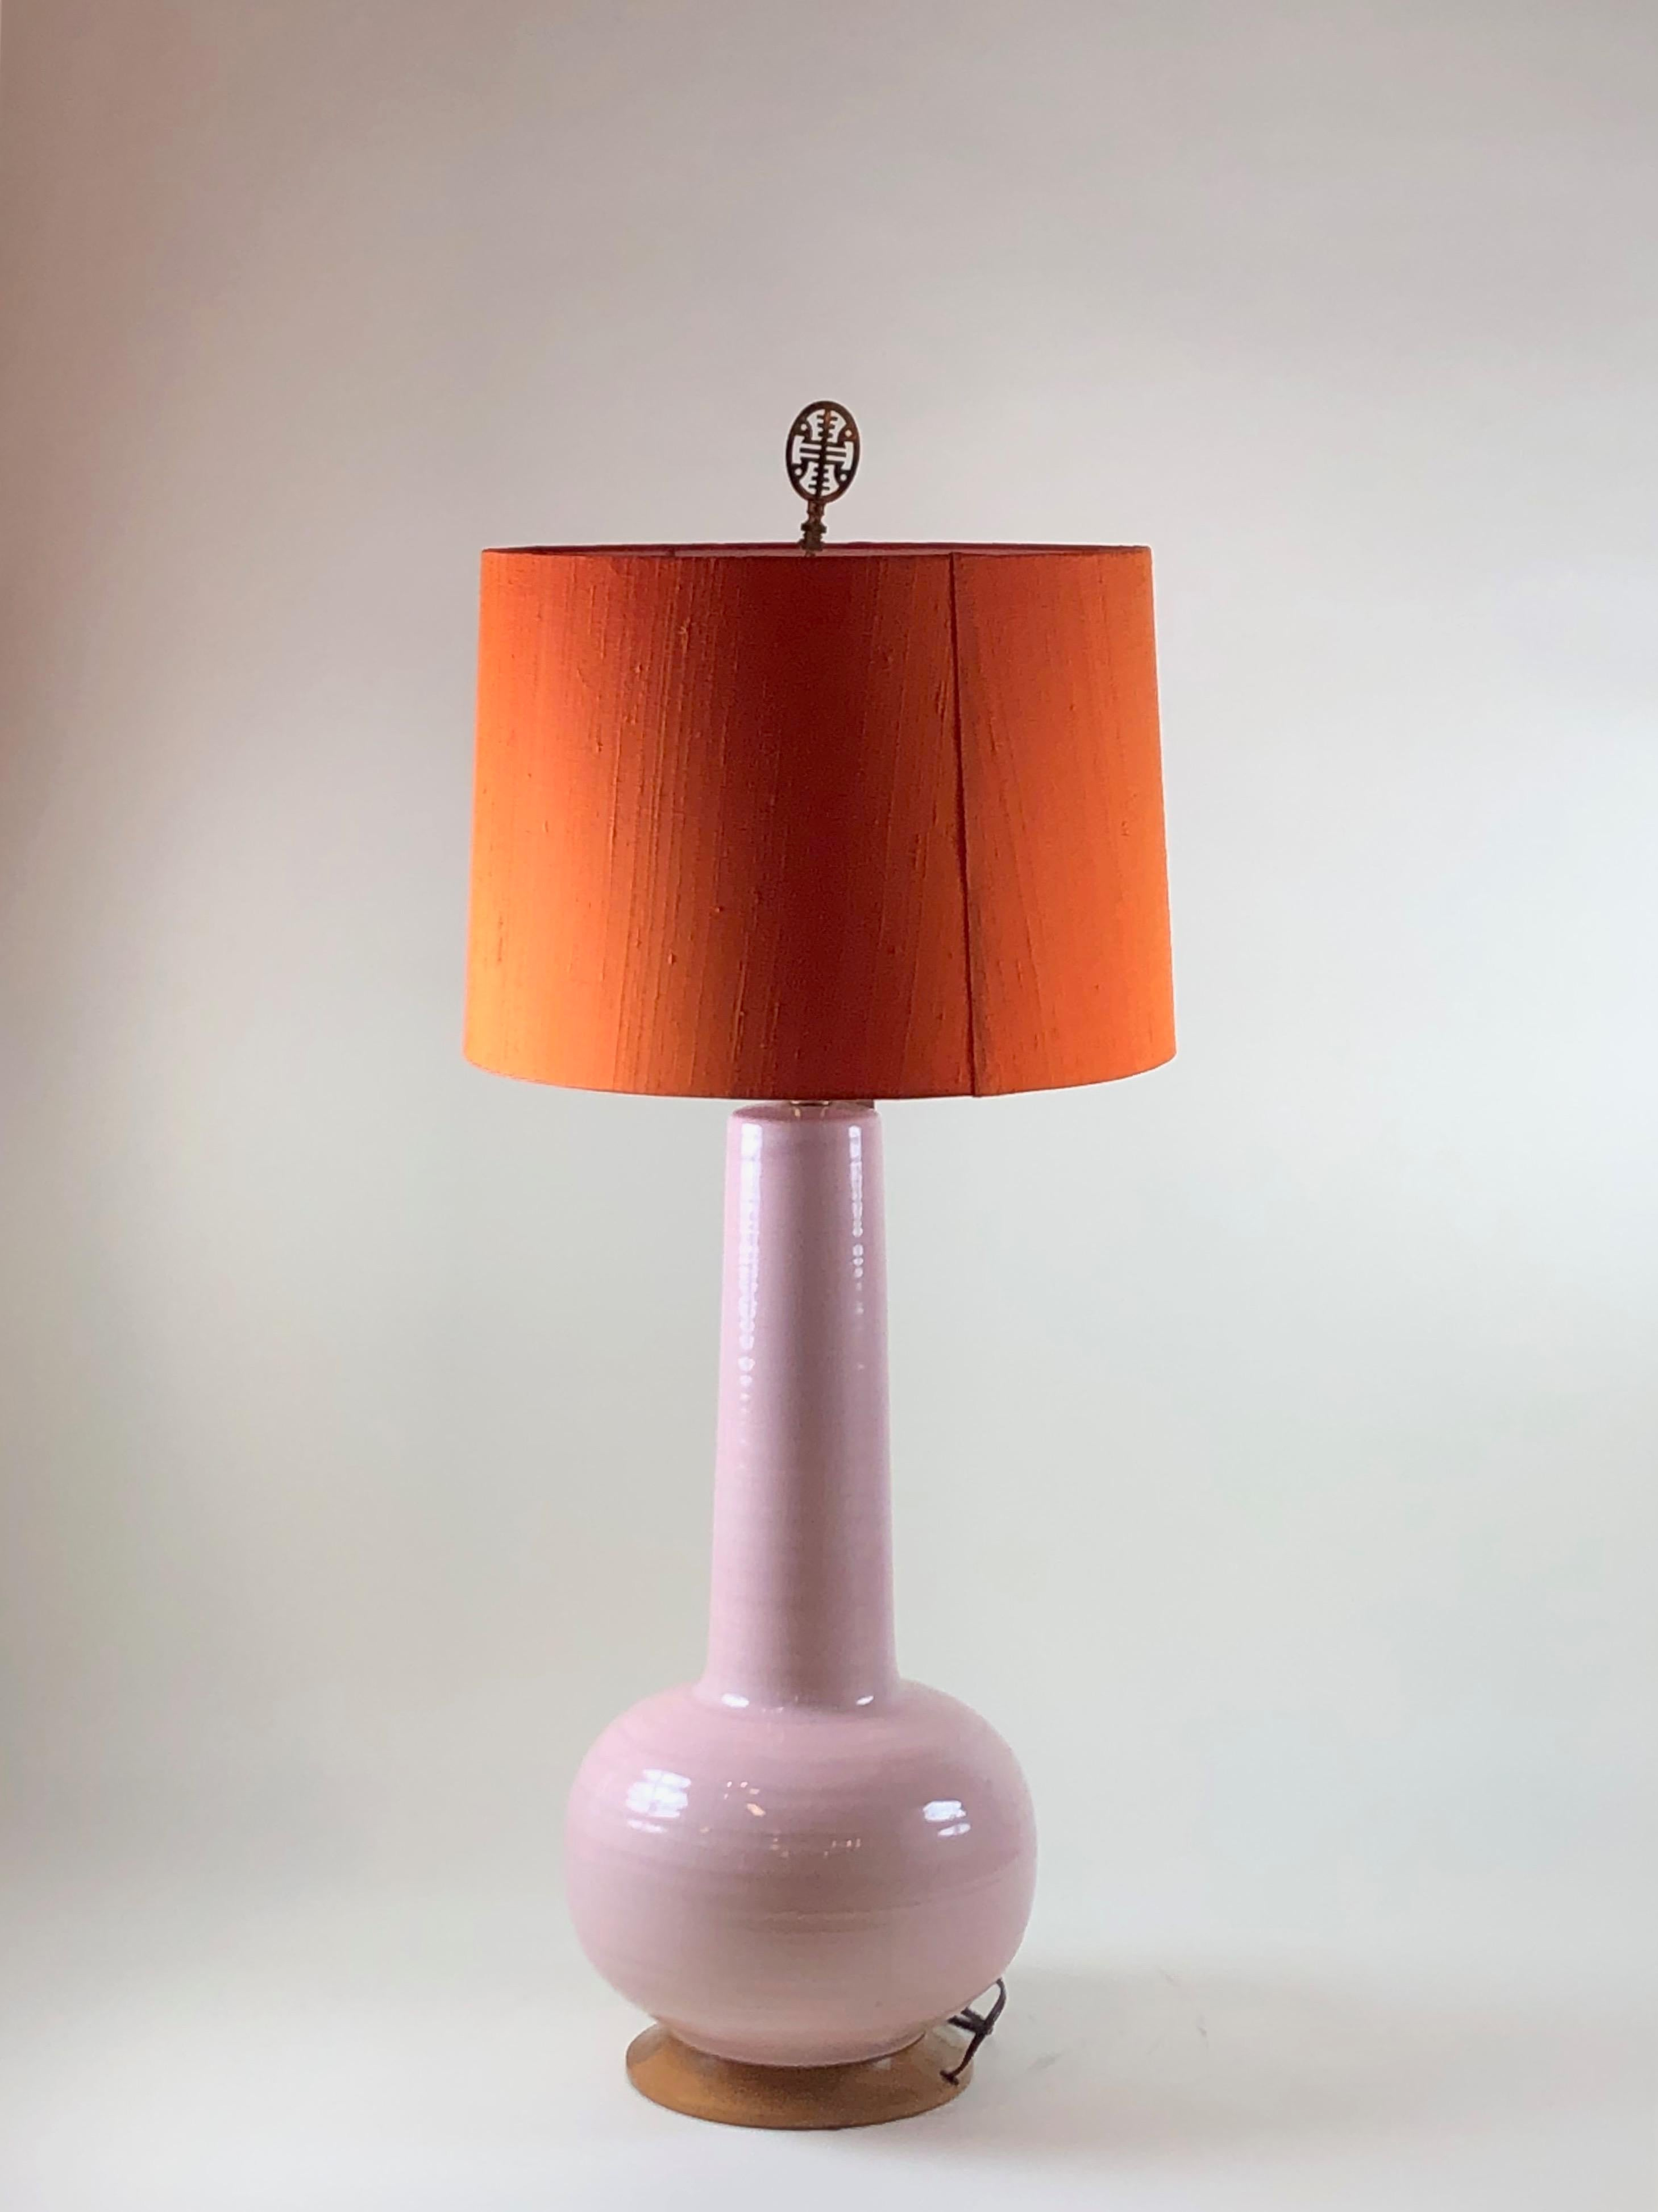 1950s Pink Ceramic Table Lamps With Orange Shades A Pair Chairish